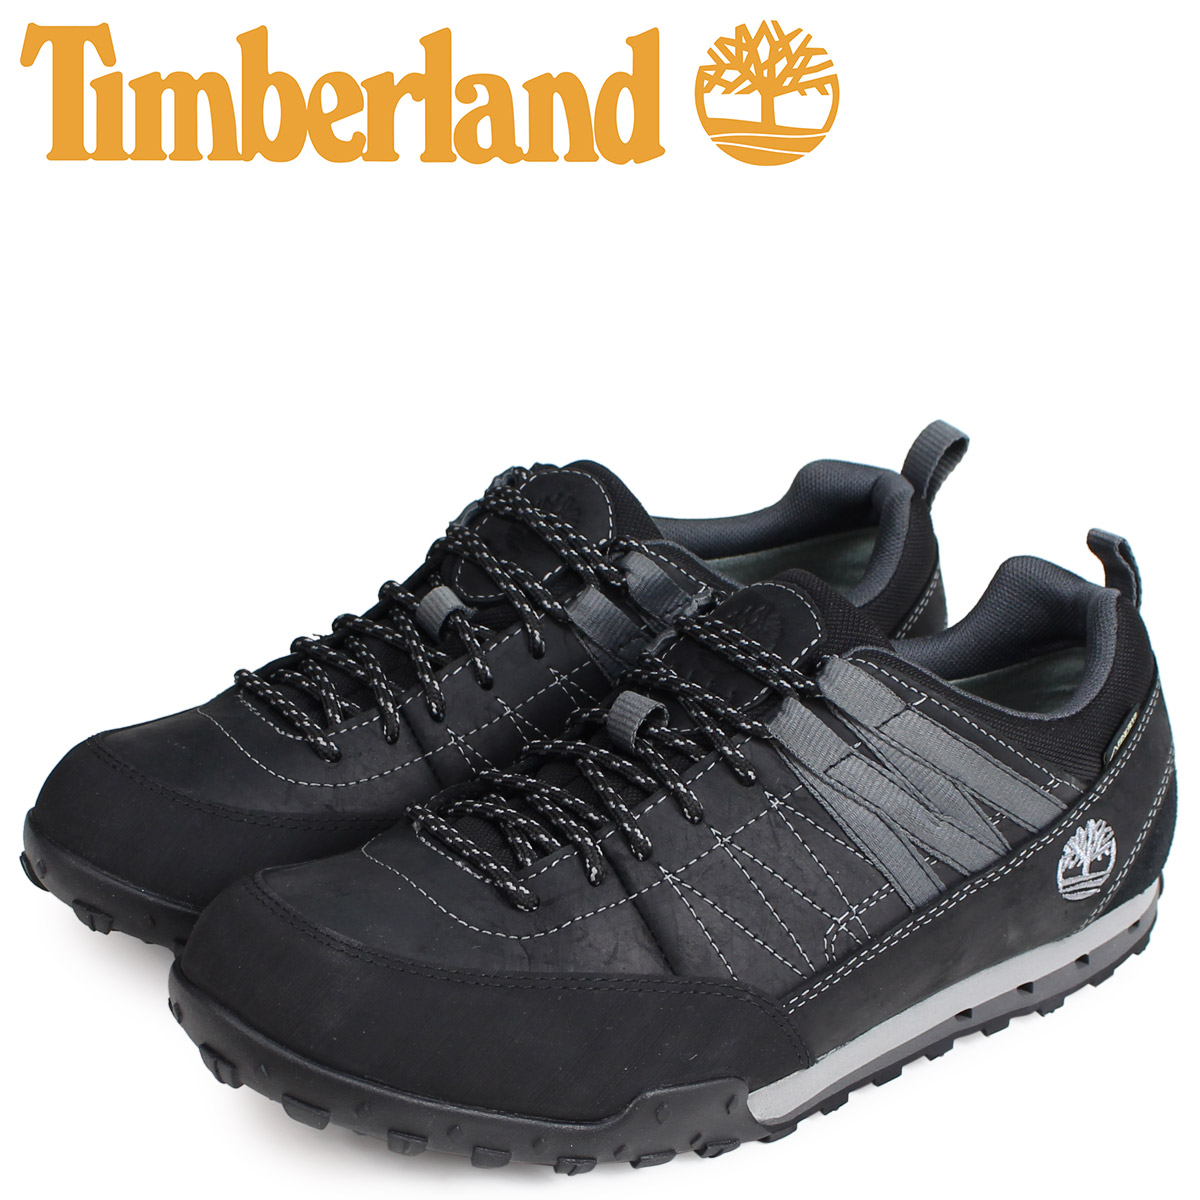 Timberland Timberland sneakers Greeley approach men GREELEY APPROACH LOW GORE TEX black black A18OB